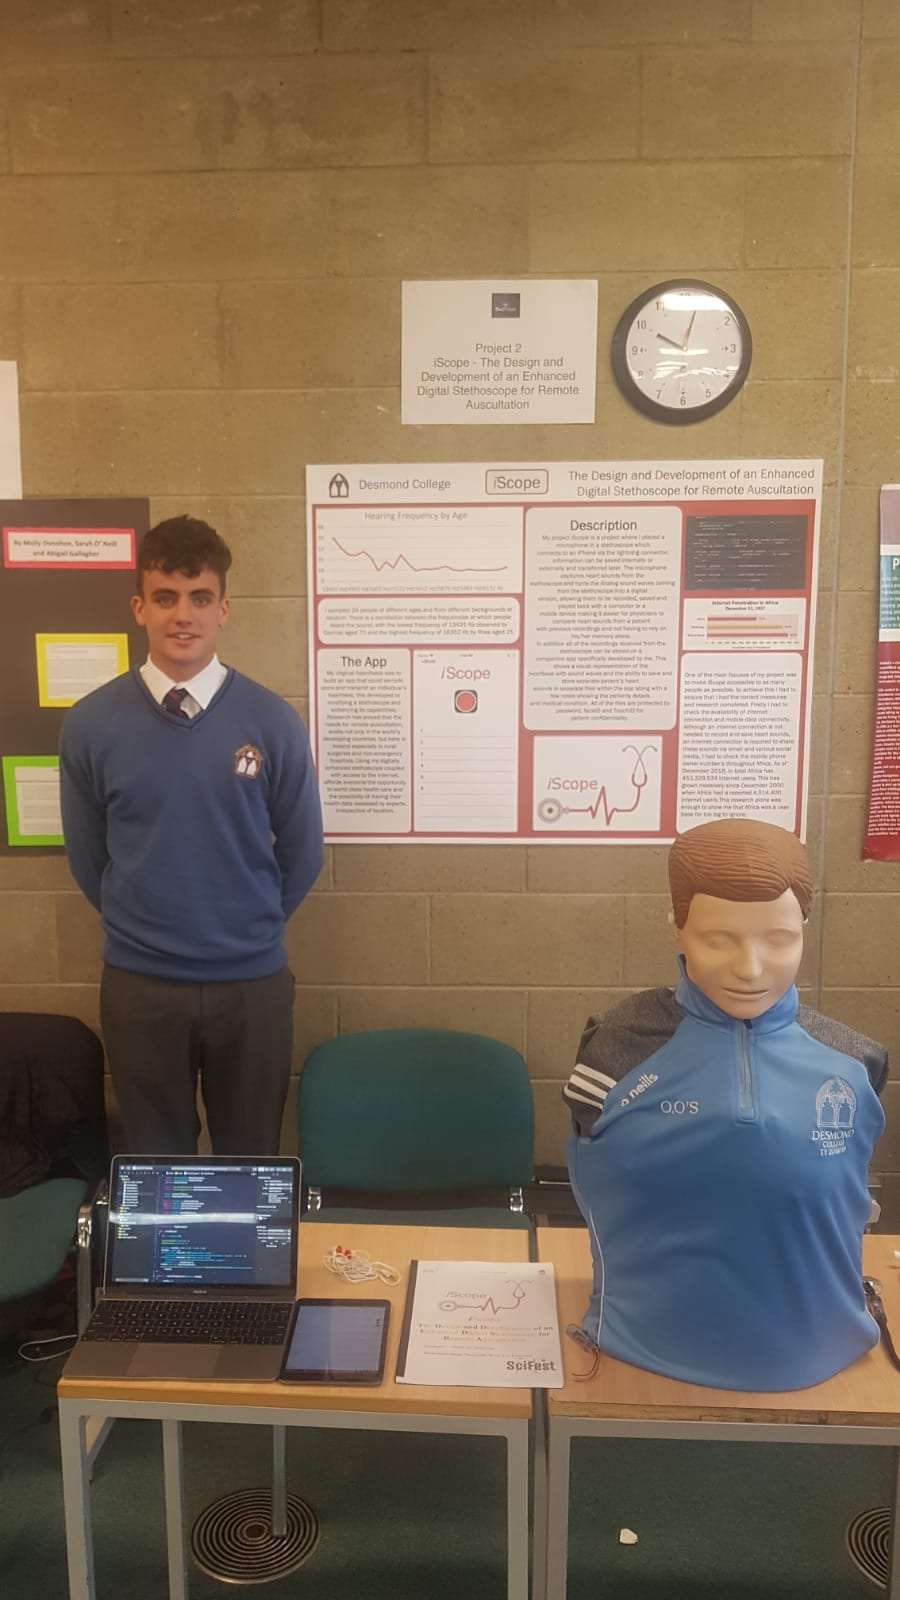 Oisín O'Sullivan completed a project entitled 'iScope – The Design and Development of an Enhanced Digital Stethoscope for Remote Auscultation.